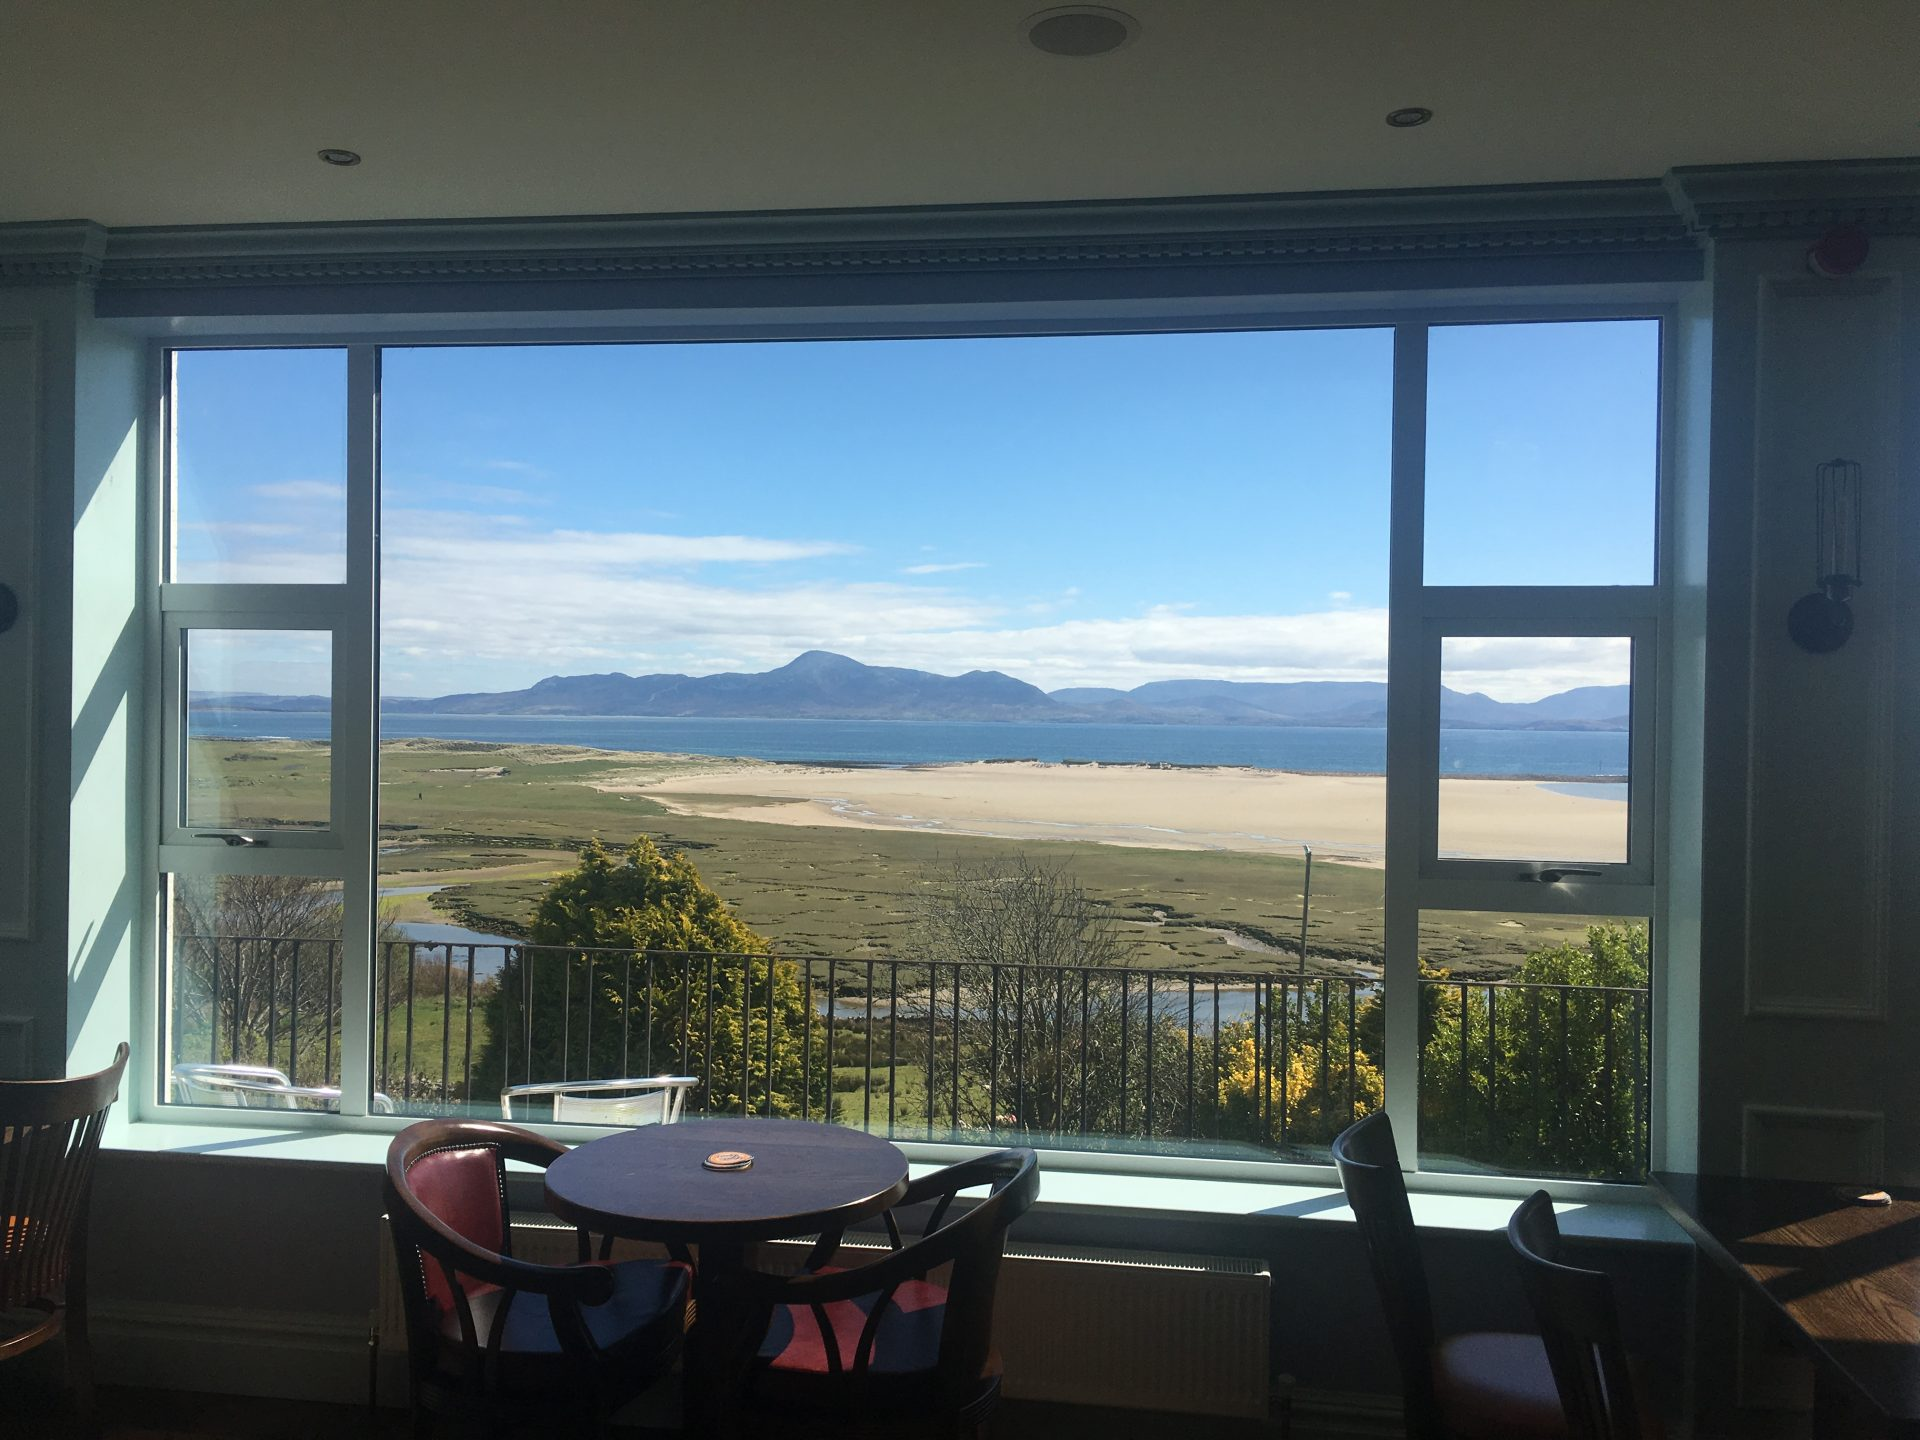 View from inside McLoughlins Mulranny